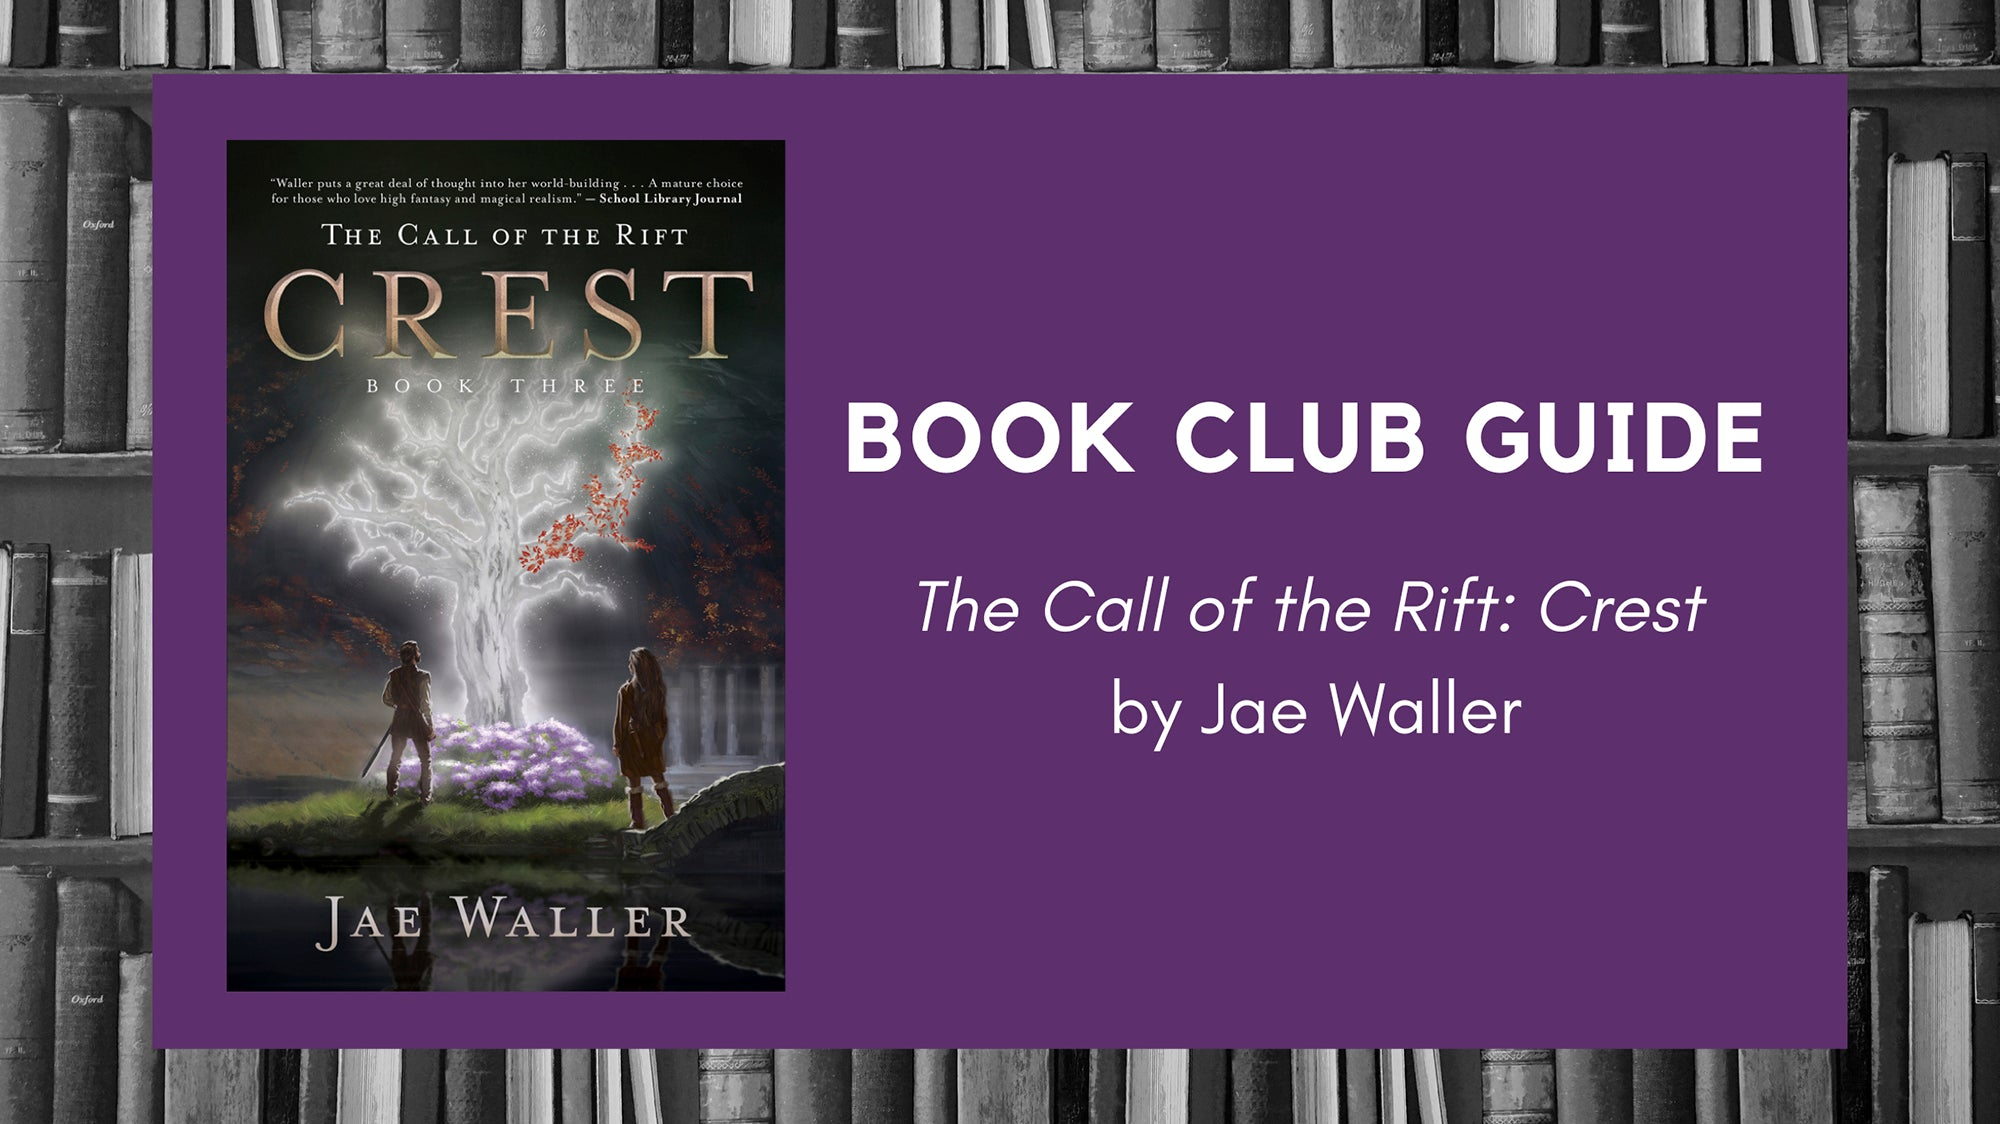 Book Club Guide: The Call of the Rift: Crest by Jae Waller